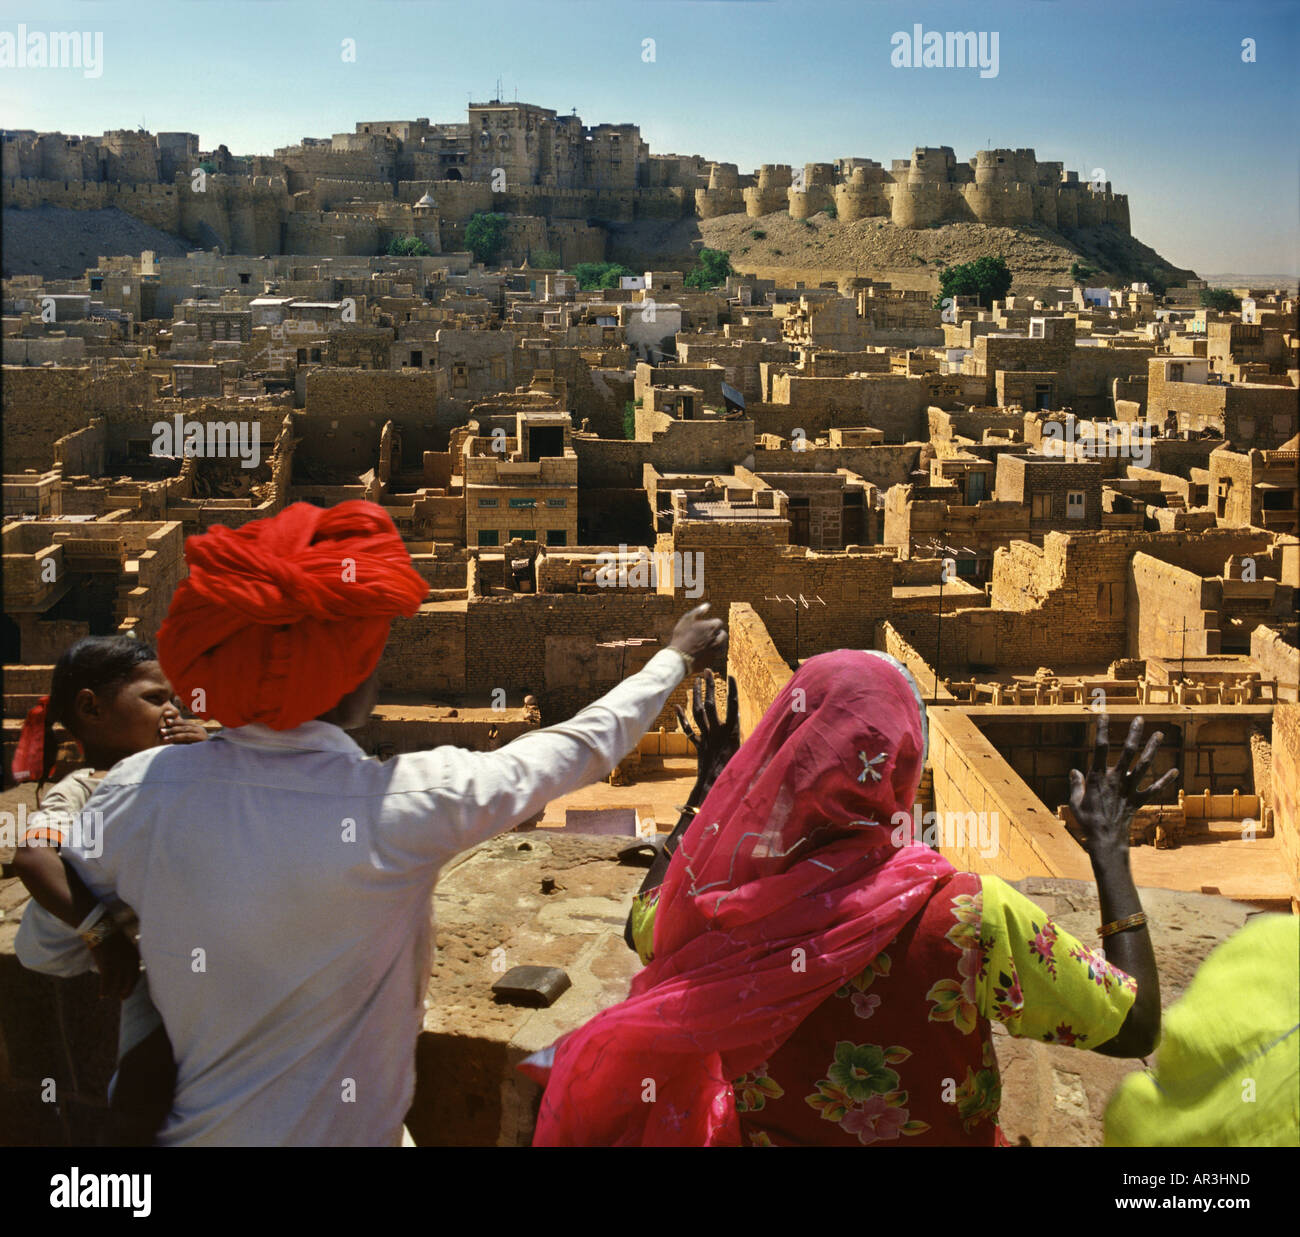 Family on viewpoint, Jaisalmer, Rajasthan, India, Asien - Stock Image